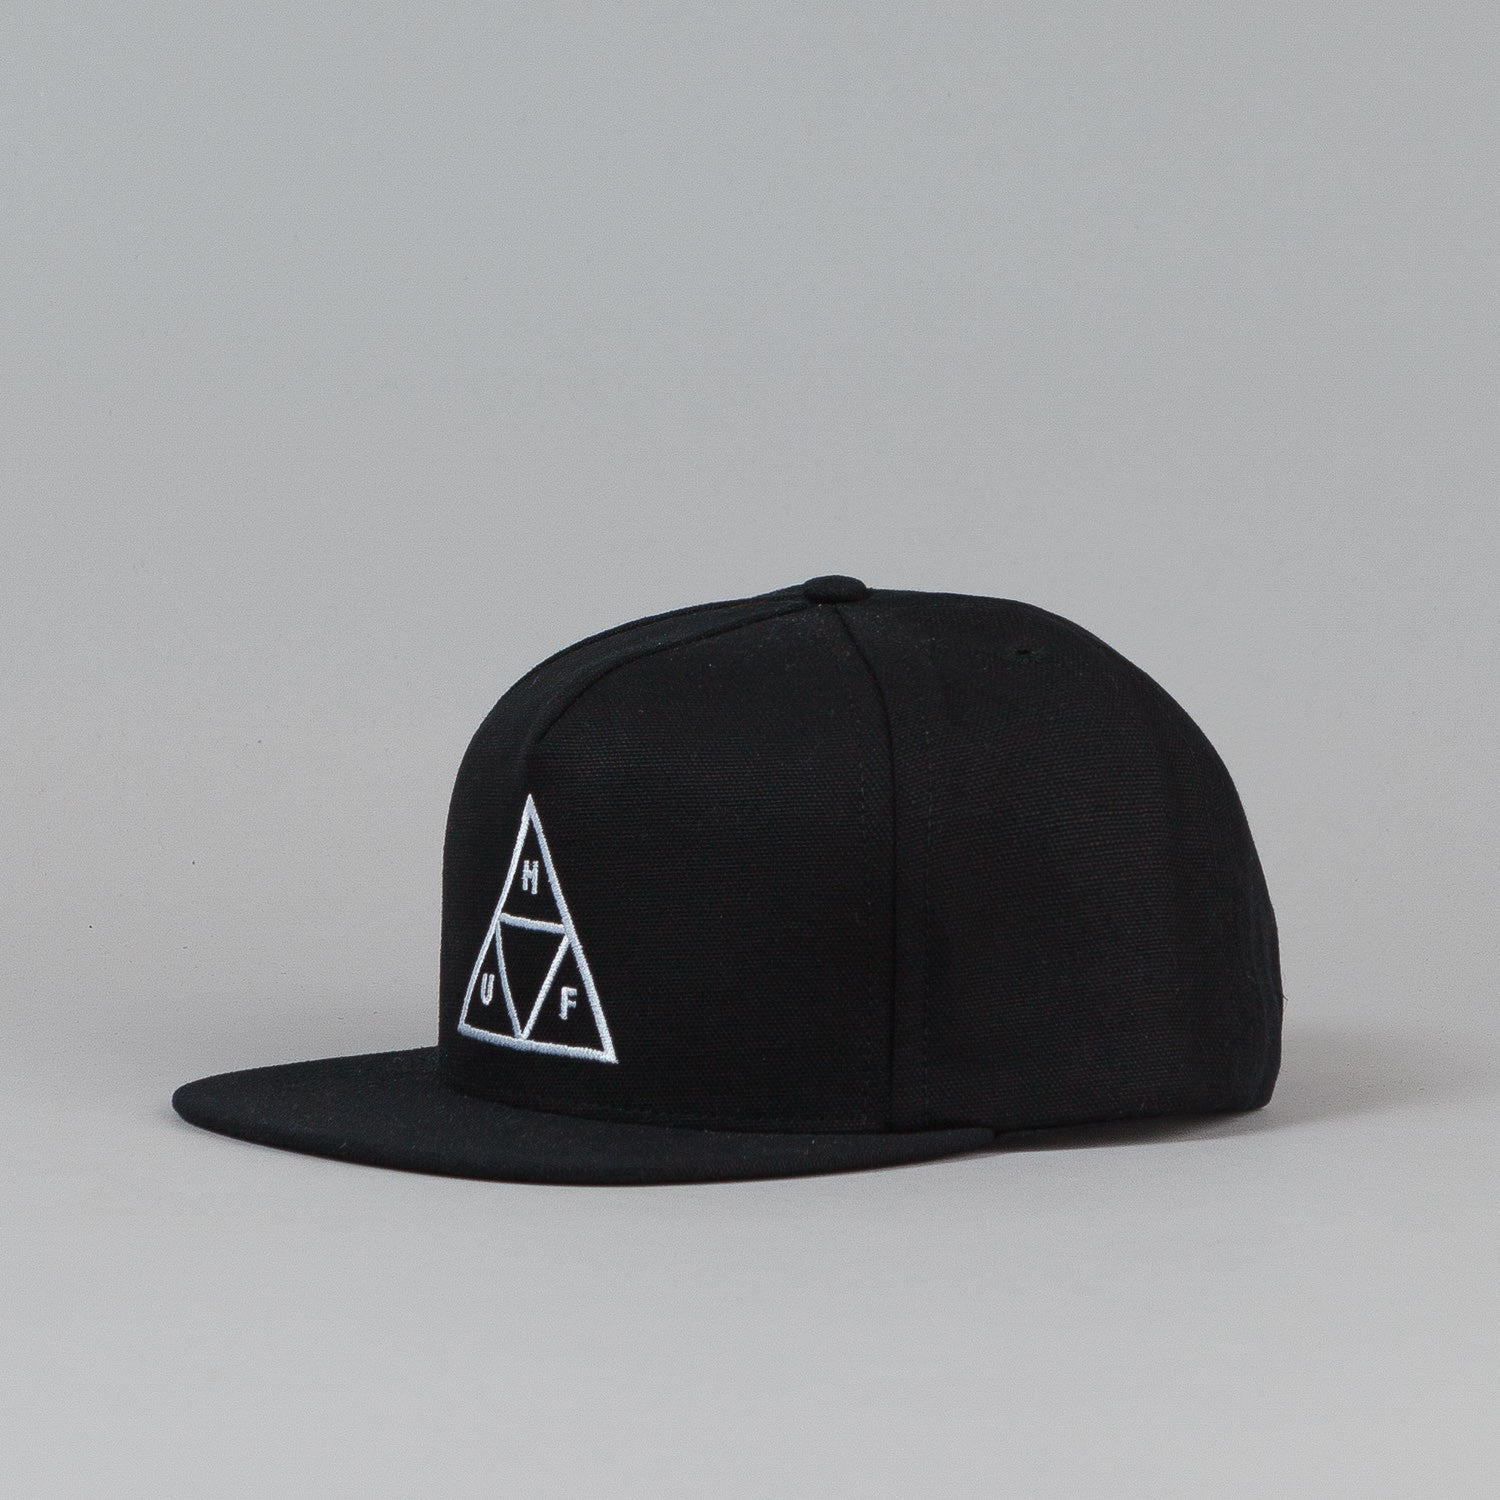 Huf DWR Triple Triangle Snapback Cap Black